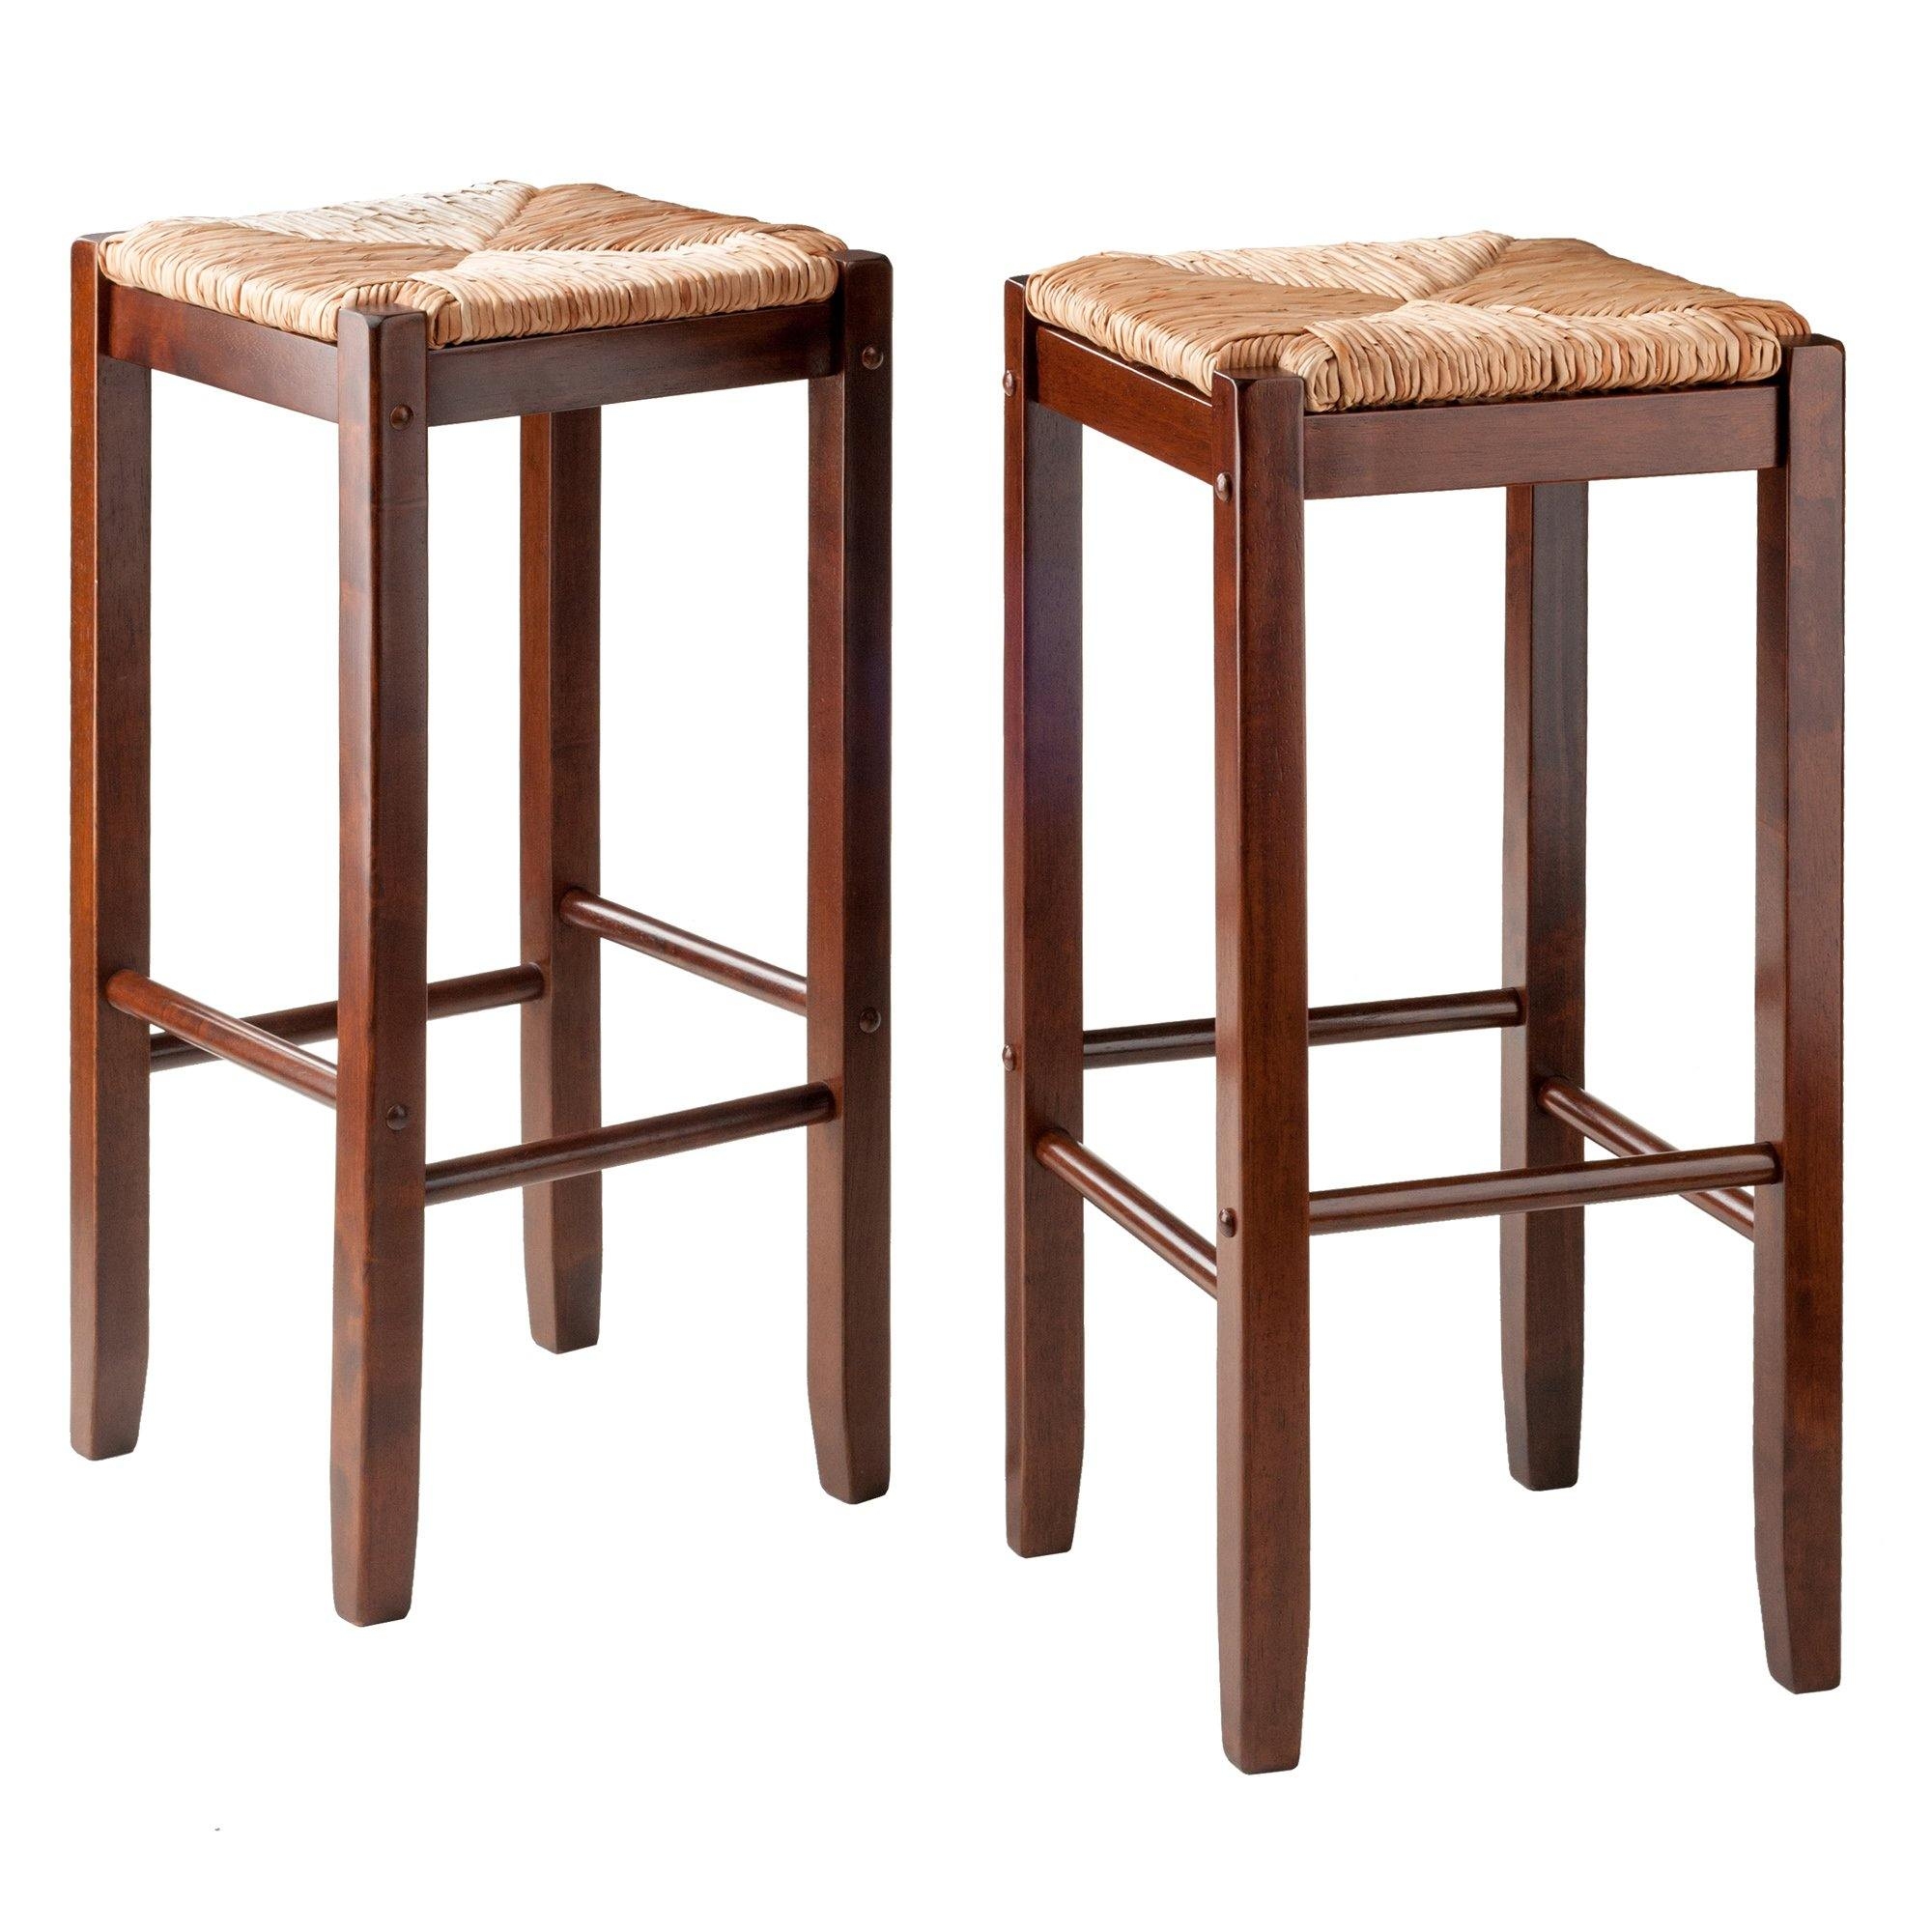 Kaden Rush Seat Bar Stools, 2-Pc Set, Walnut - My USA Furniture